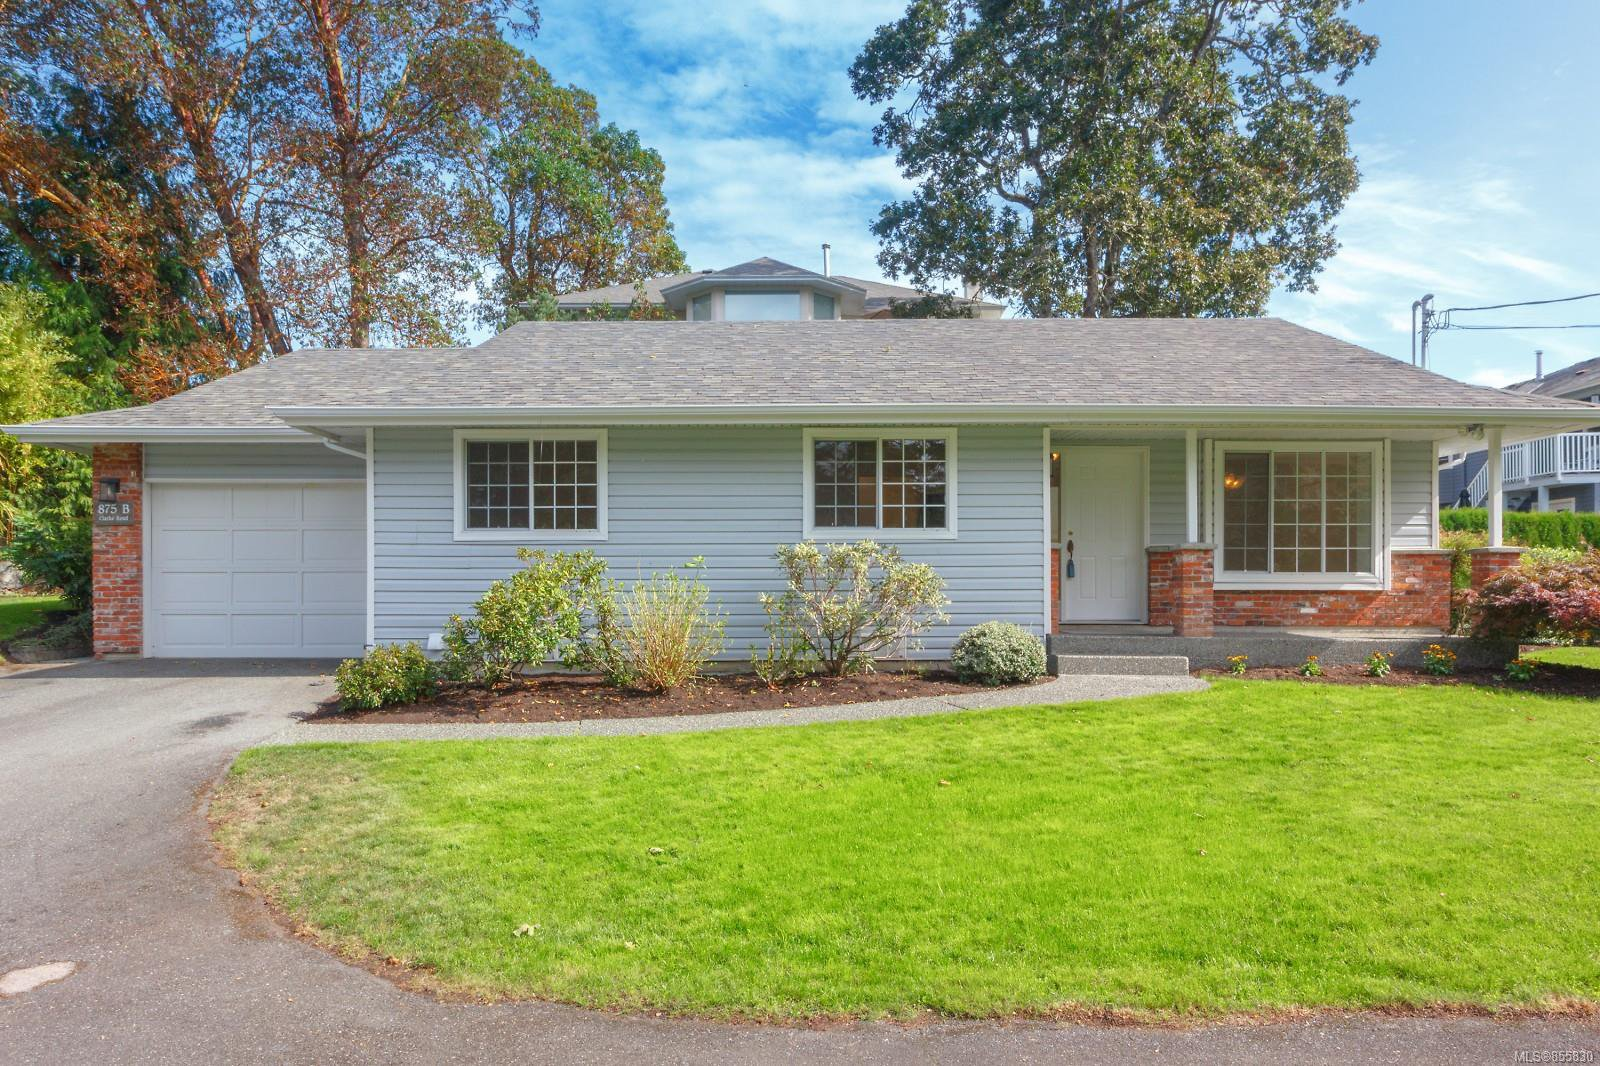 Main Photo: B 875 Clarke Rd in : CS Brentwood Bay House for sale (Central Saanich)  : MLS®# 855830